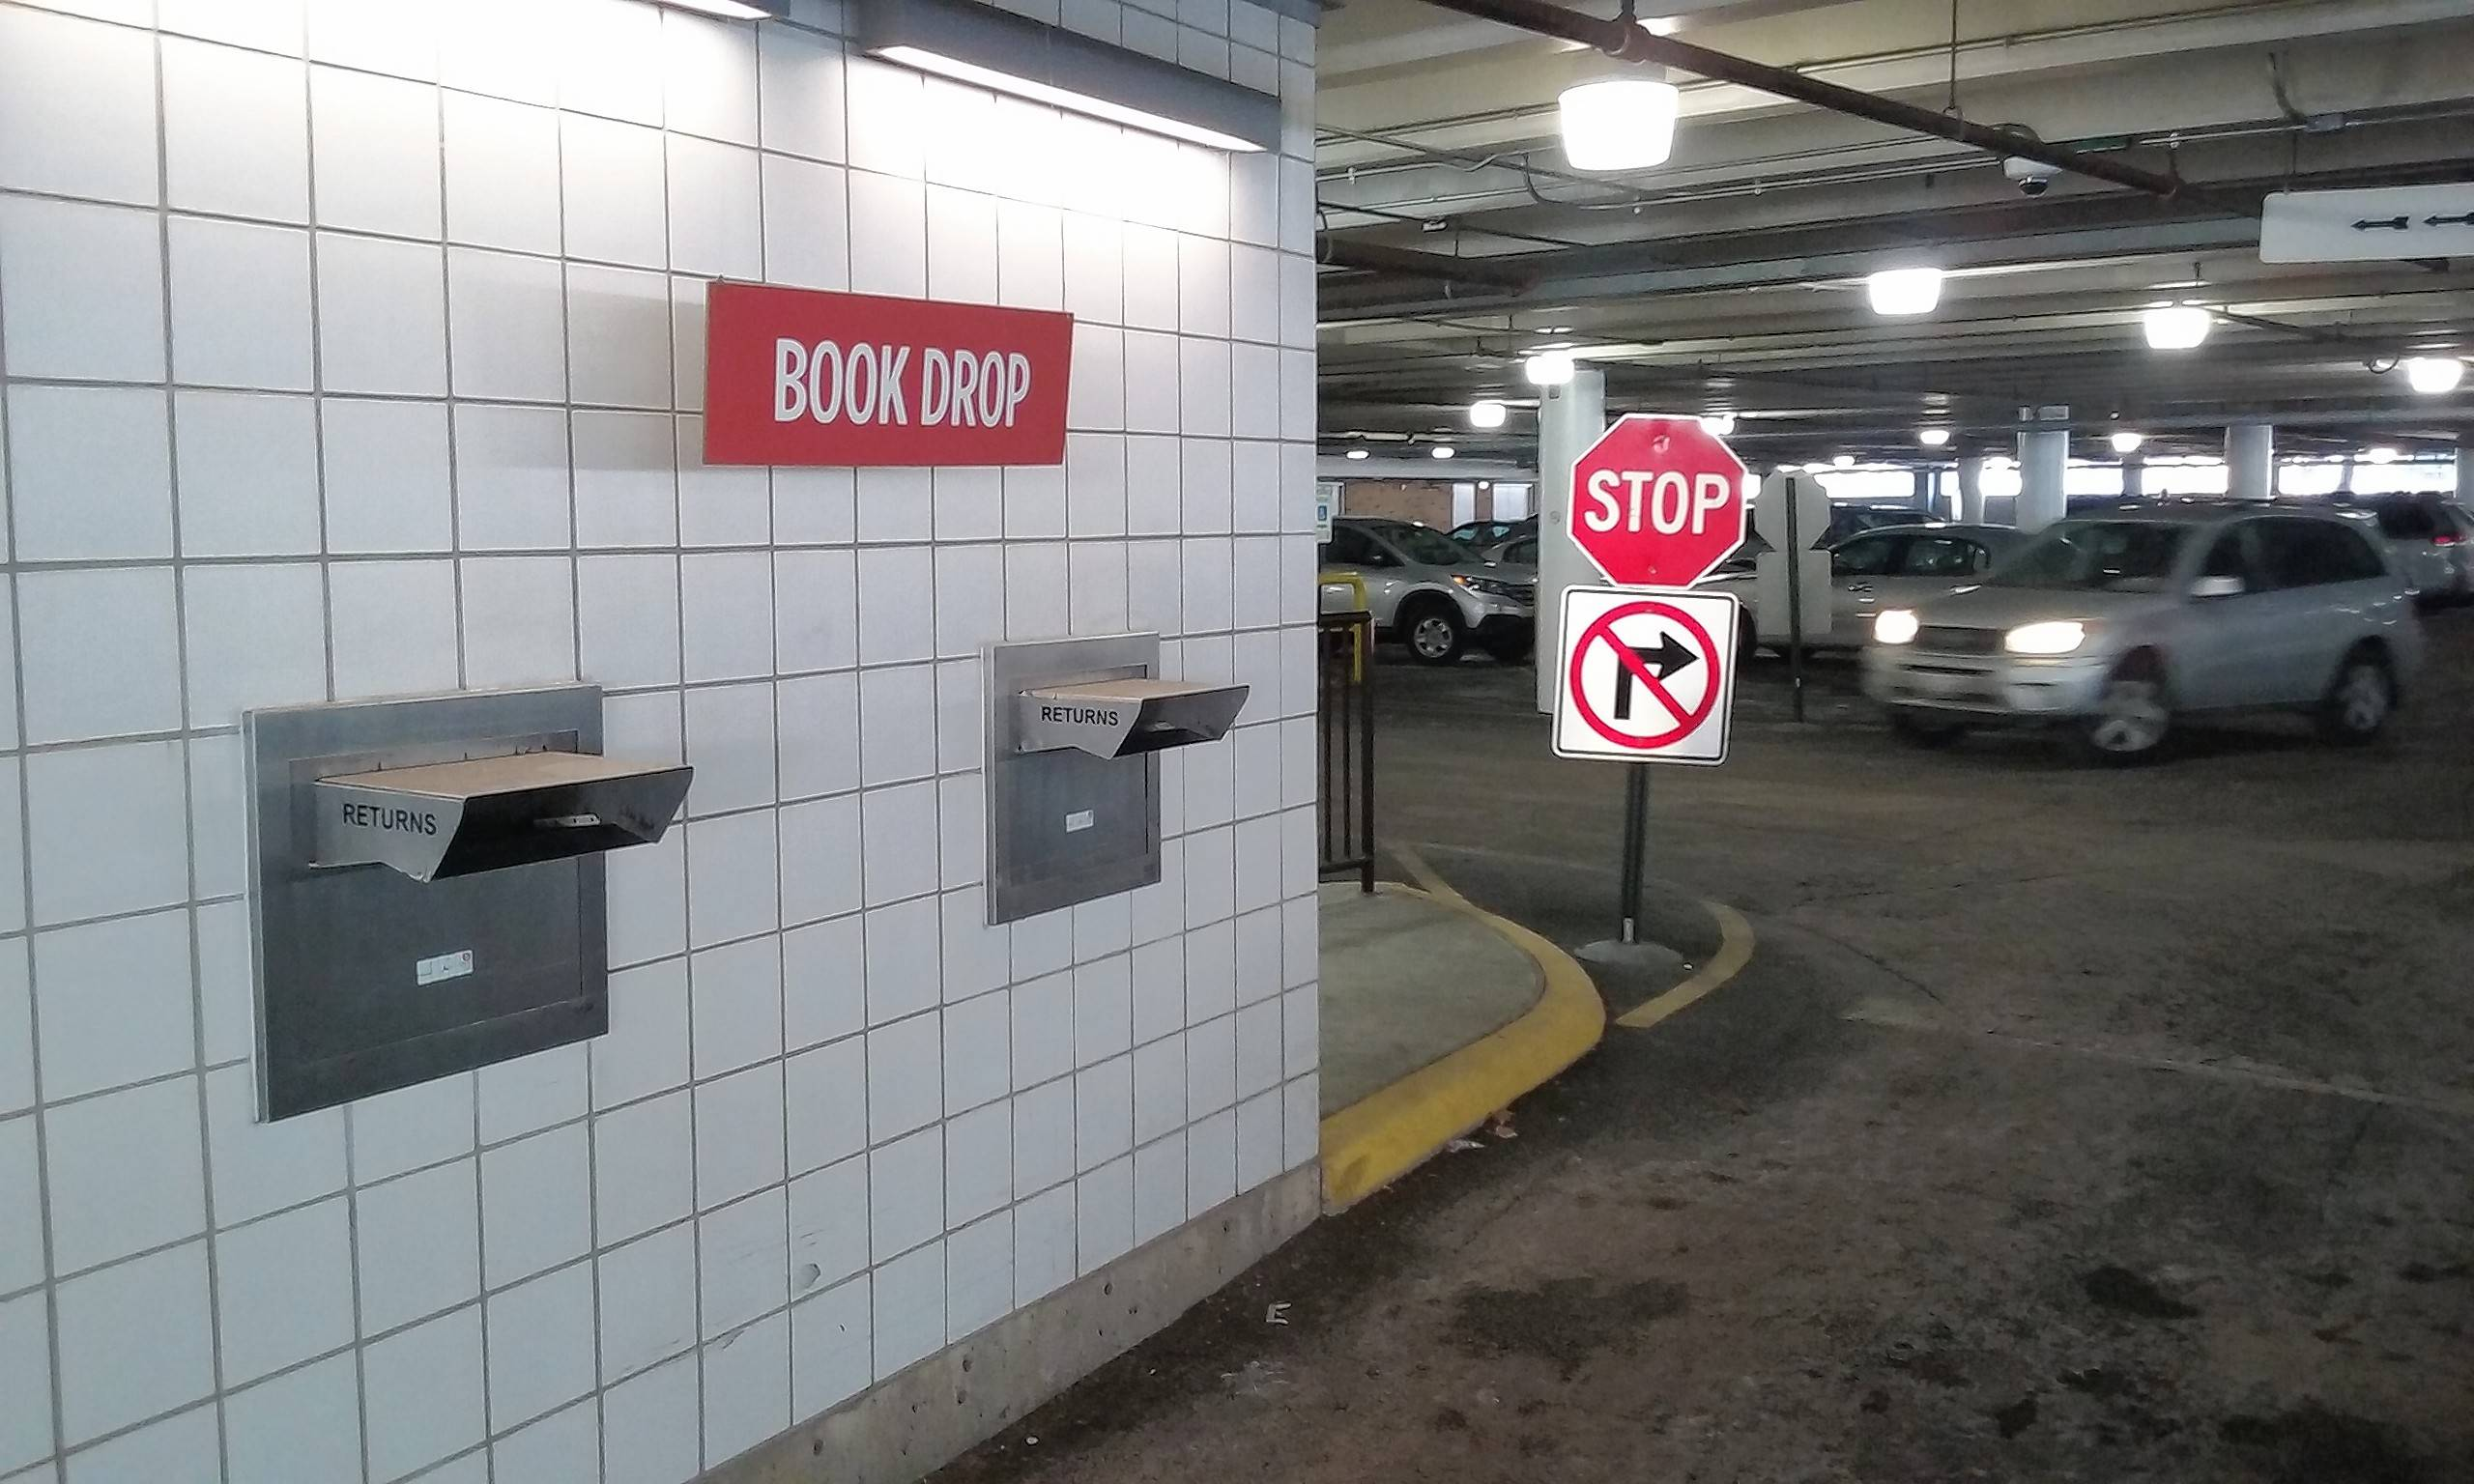 The book drop in the lower level parking garage of the Arlington Heights Memorial Library will be closed for a short time as the garage is upgraded this summer. The library will post details on its website and social media pages as the project progresses.